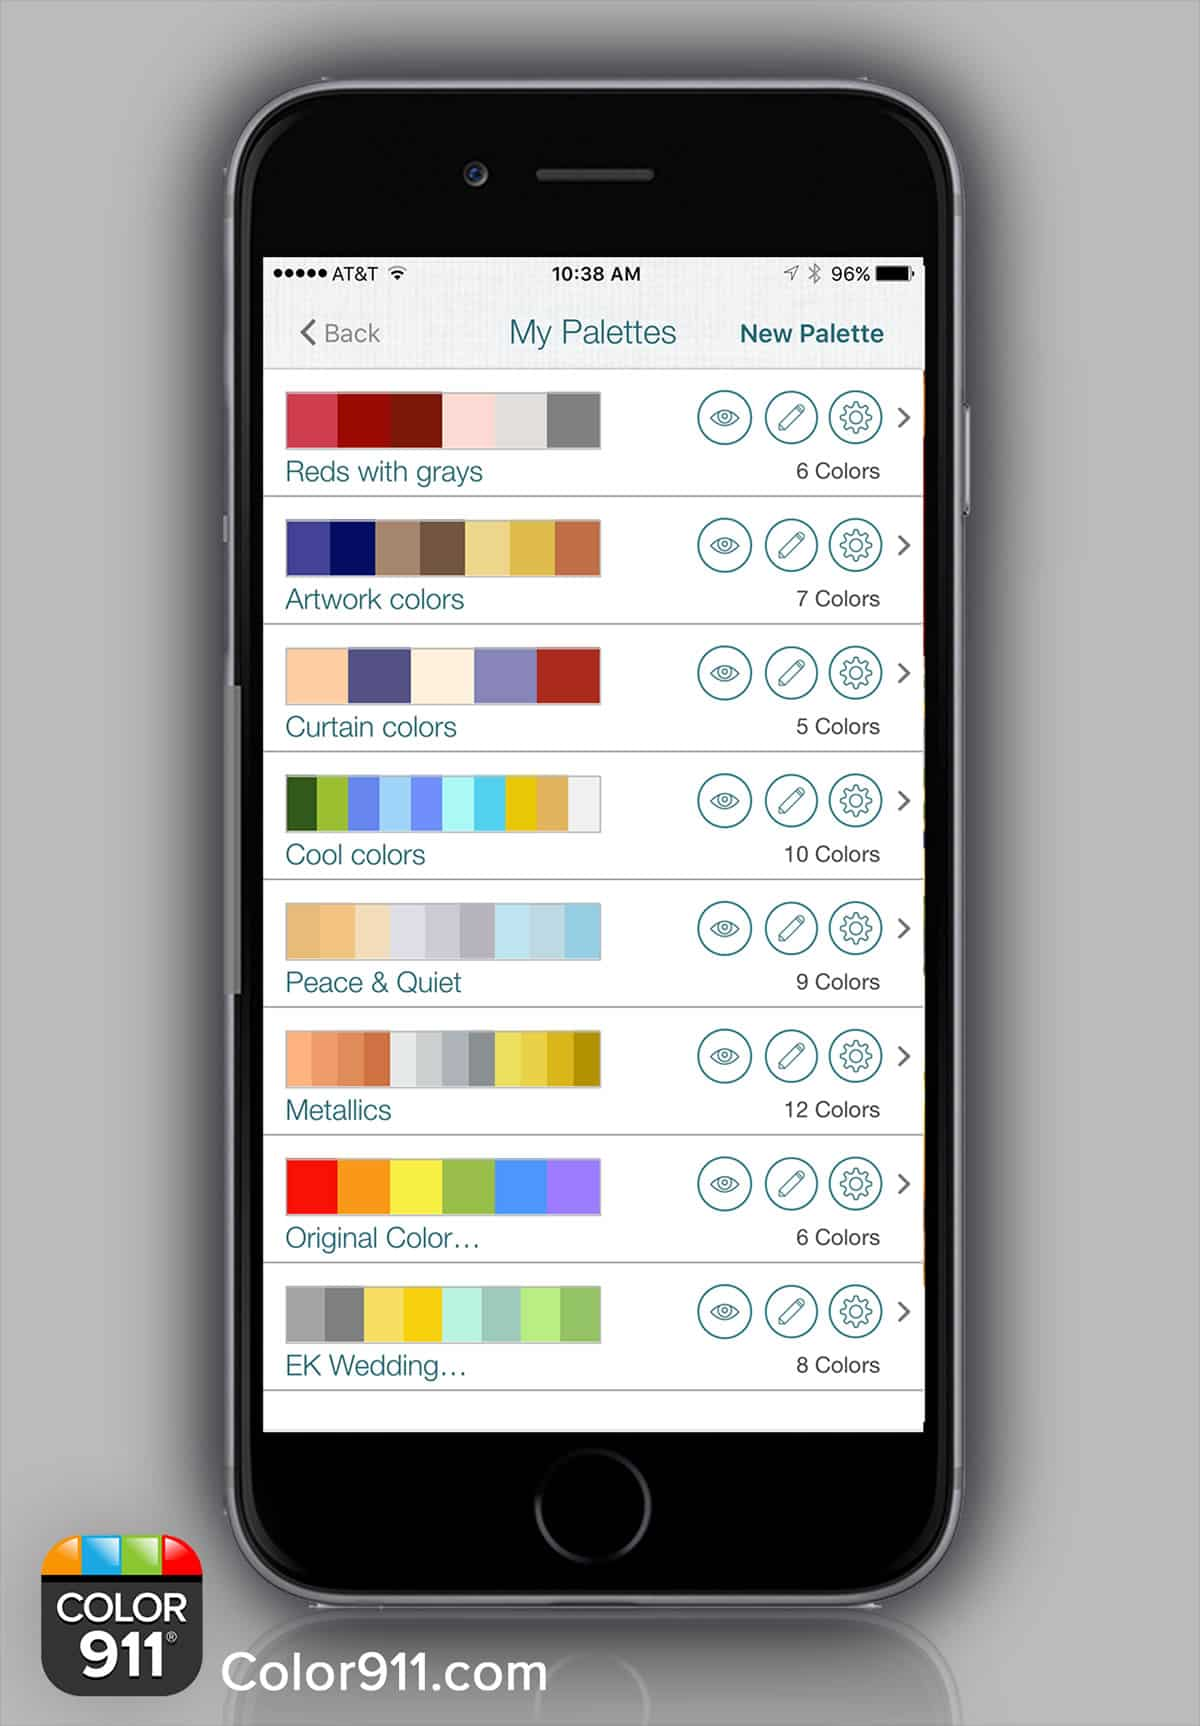 An image of the Color911 app on an iPhone displaying multiple color palettes.